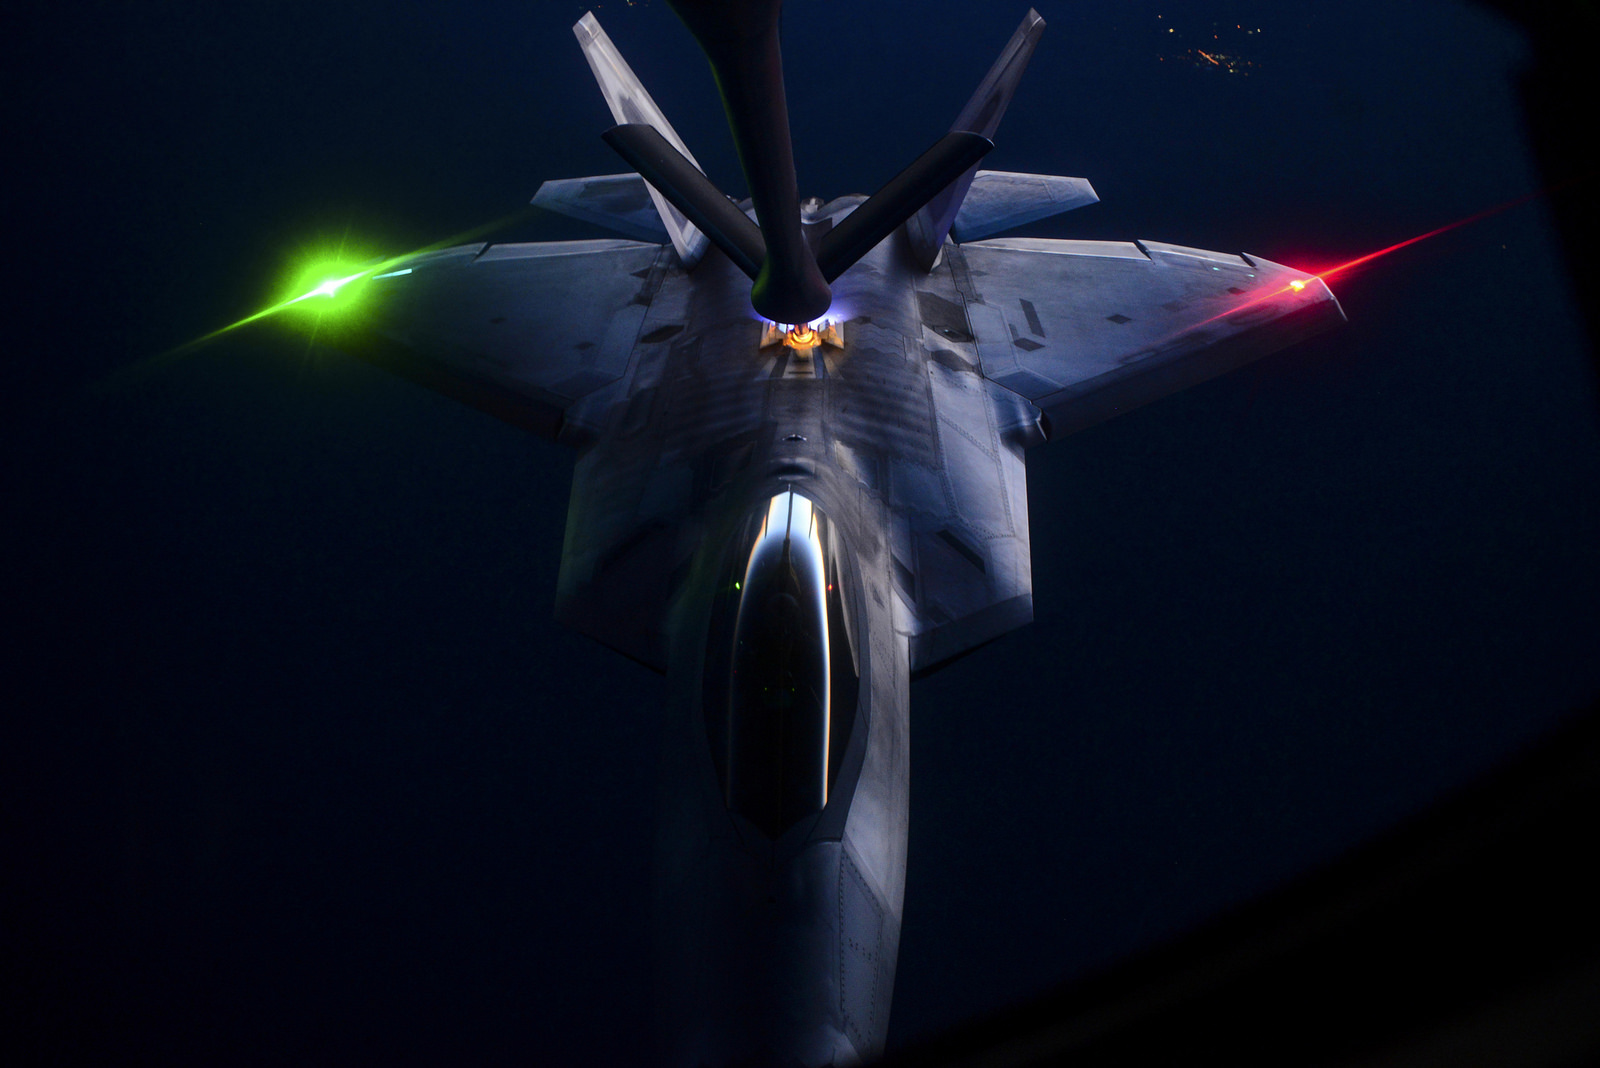 Stealth Video: Watch an F-22 Raptor Through a Nightvision Camera Do Something Impressive